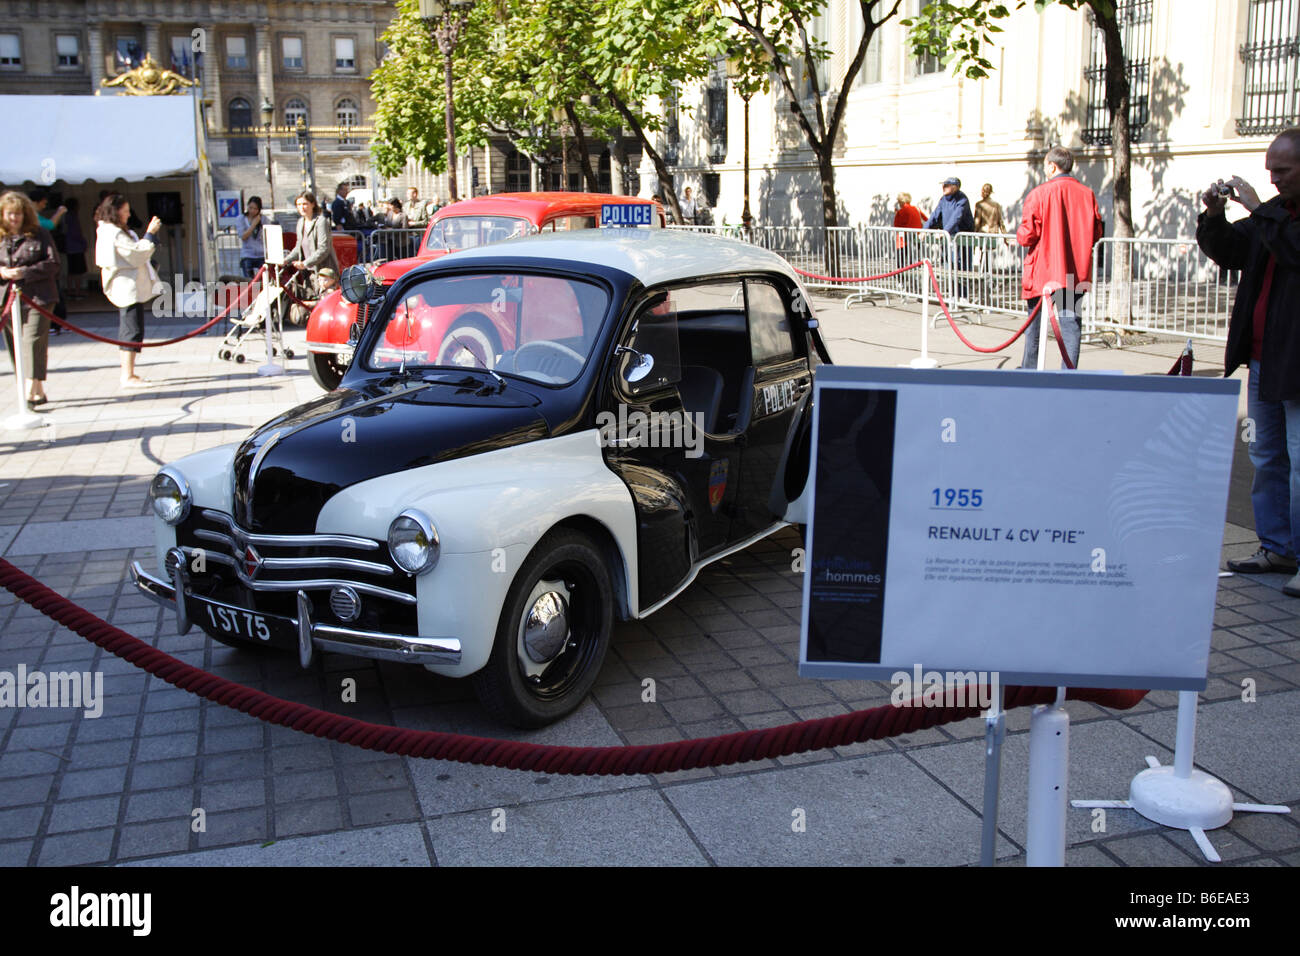 vintage 1955 renault 4 cv  u0026quot pie u0026quot  french police car  historic vehicle stock photo  royalty free